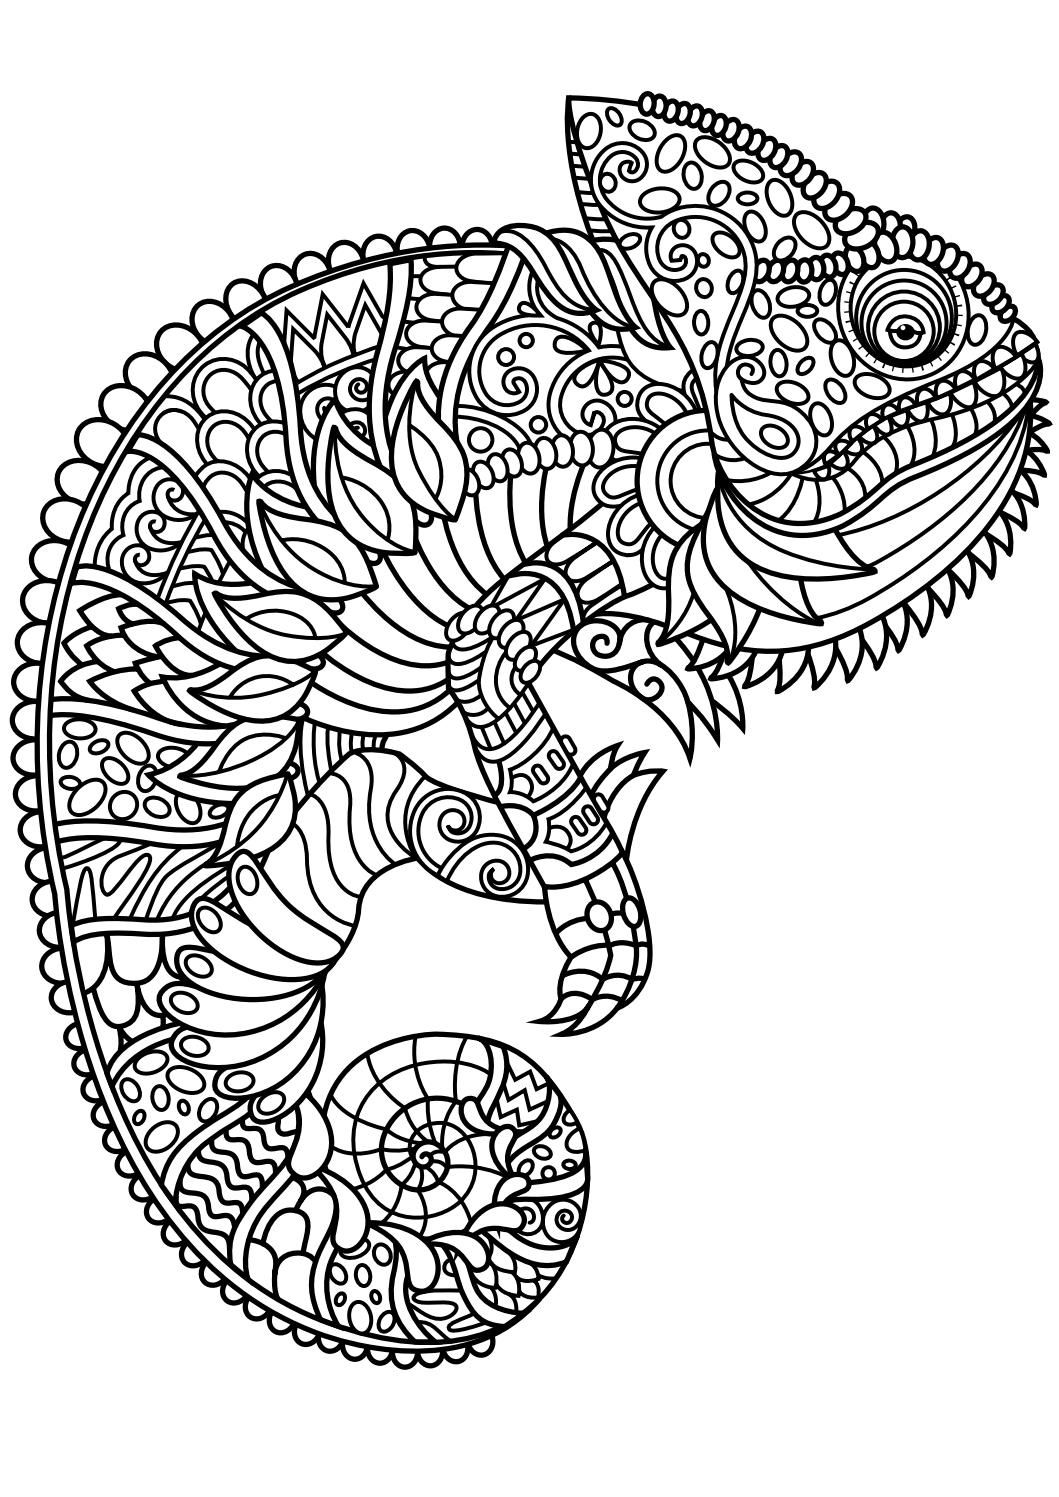 1059x1497 Animal Coloring Pages Pdf Adult Coloring, Dog Cat And Coloring Books